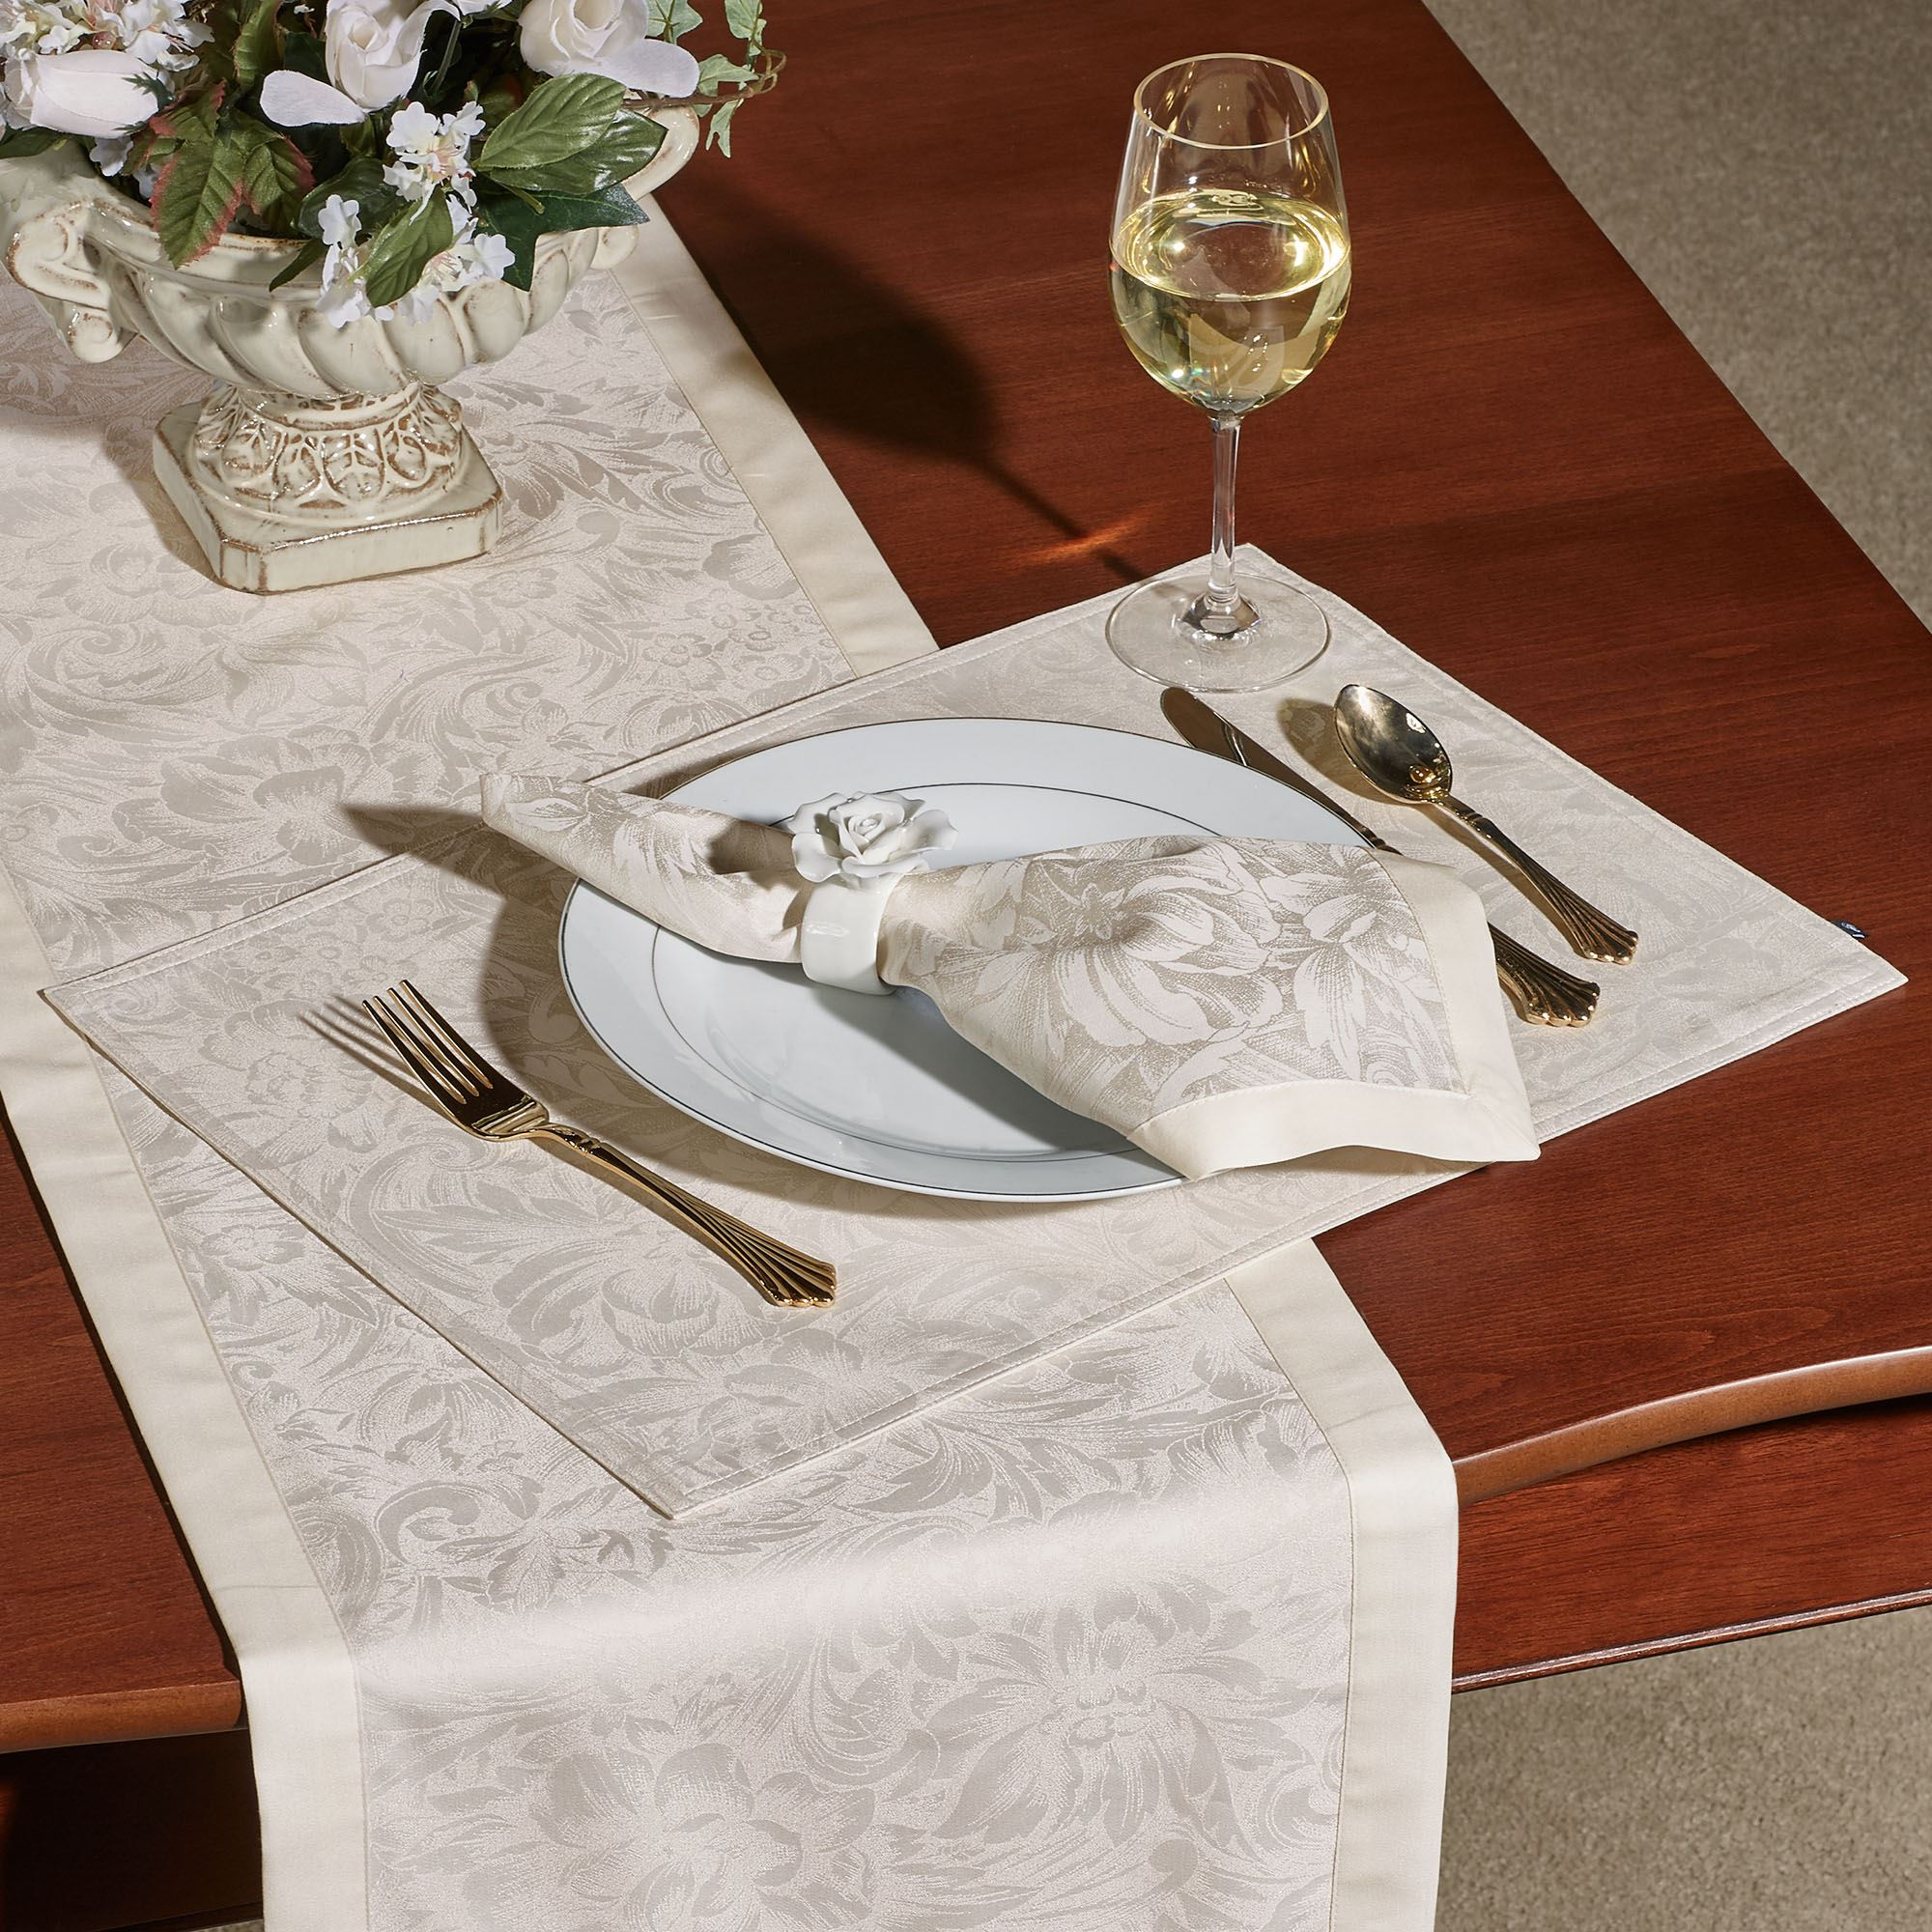 Peony Placemats Set of Four & Peony Table Runner and Table Linens by Waterford Linens